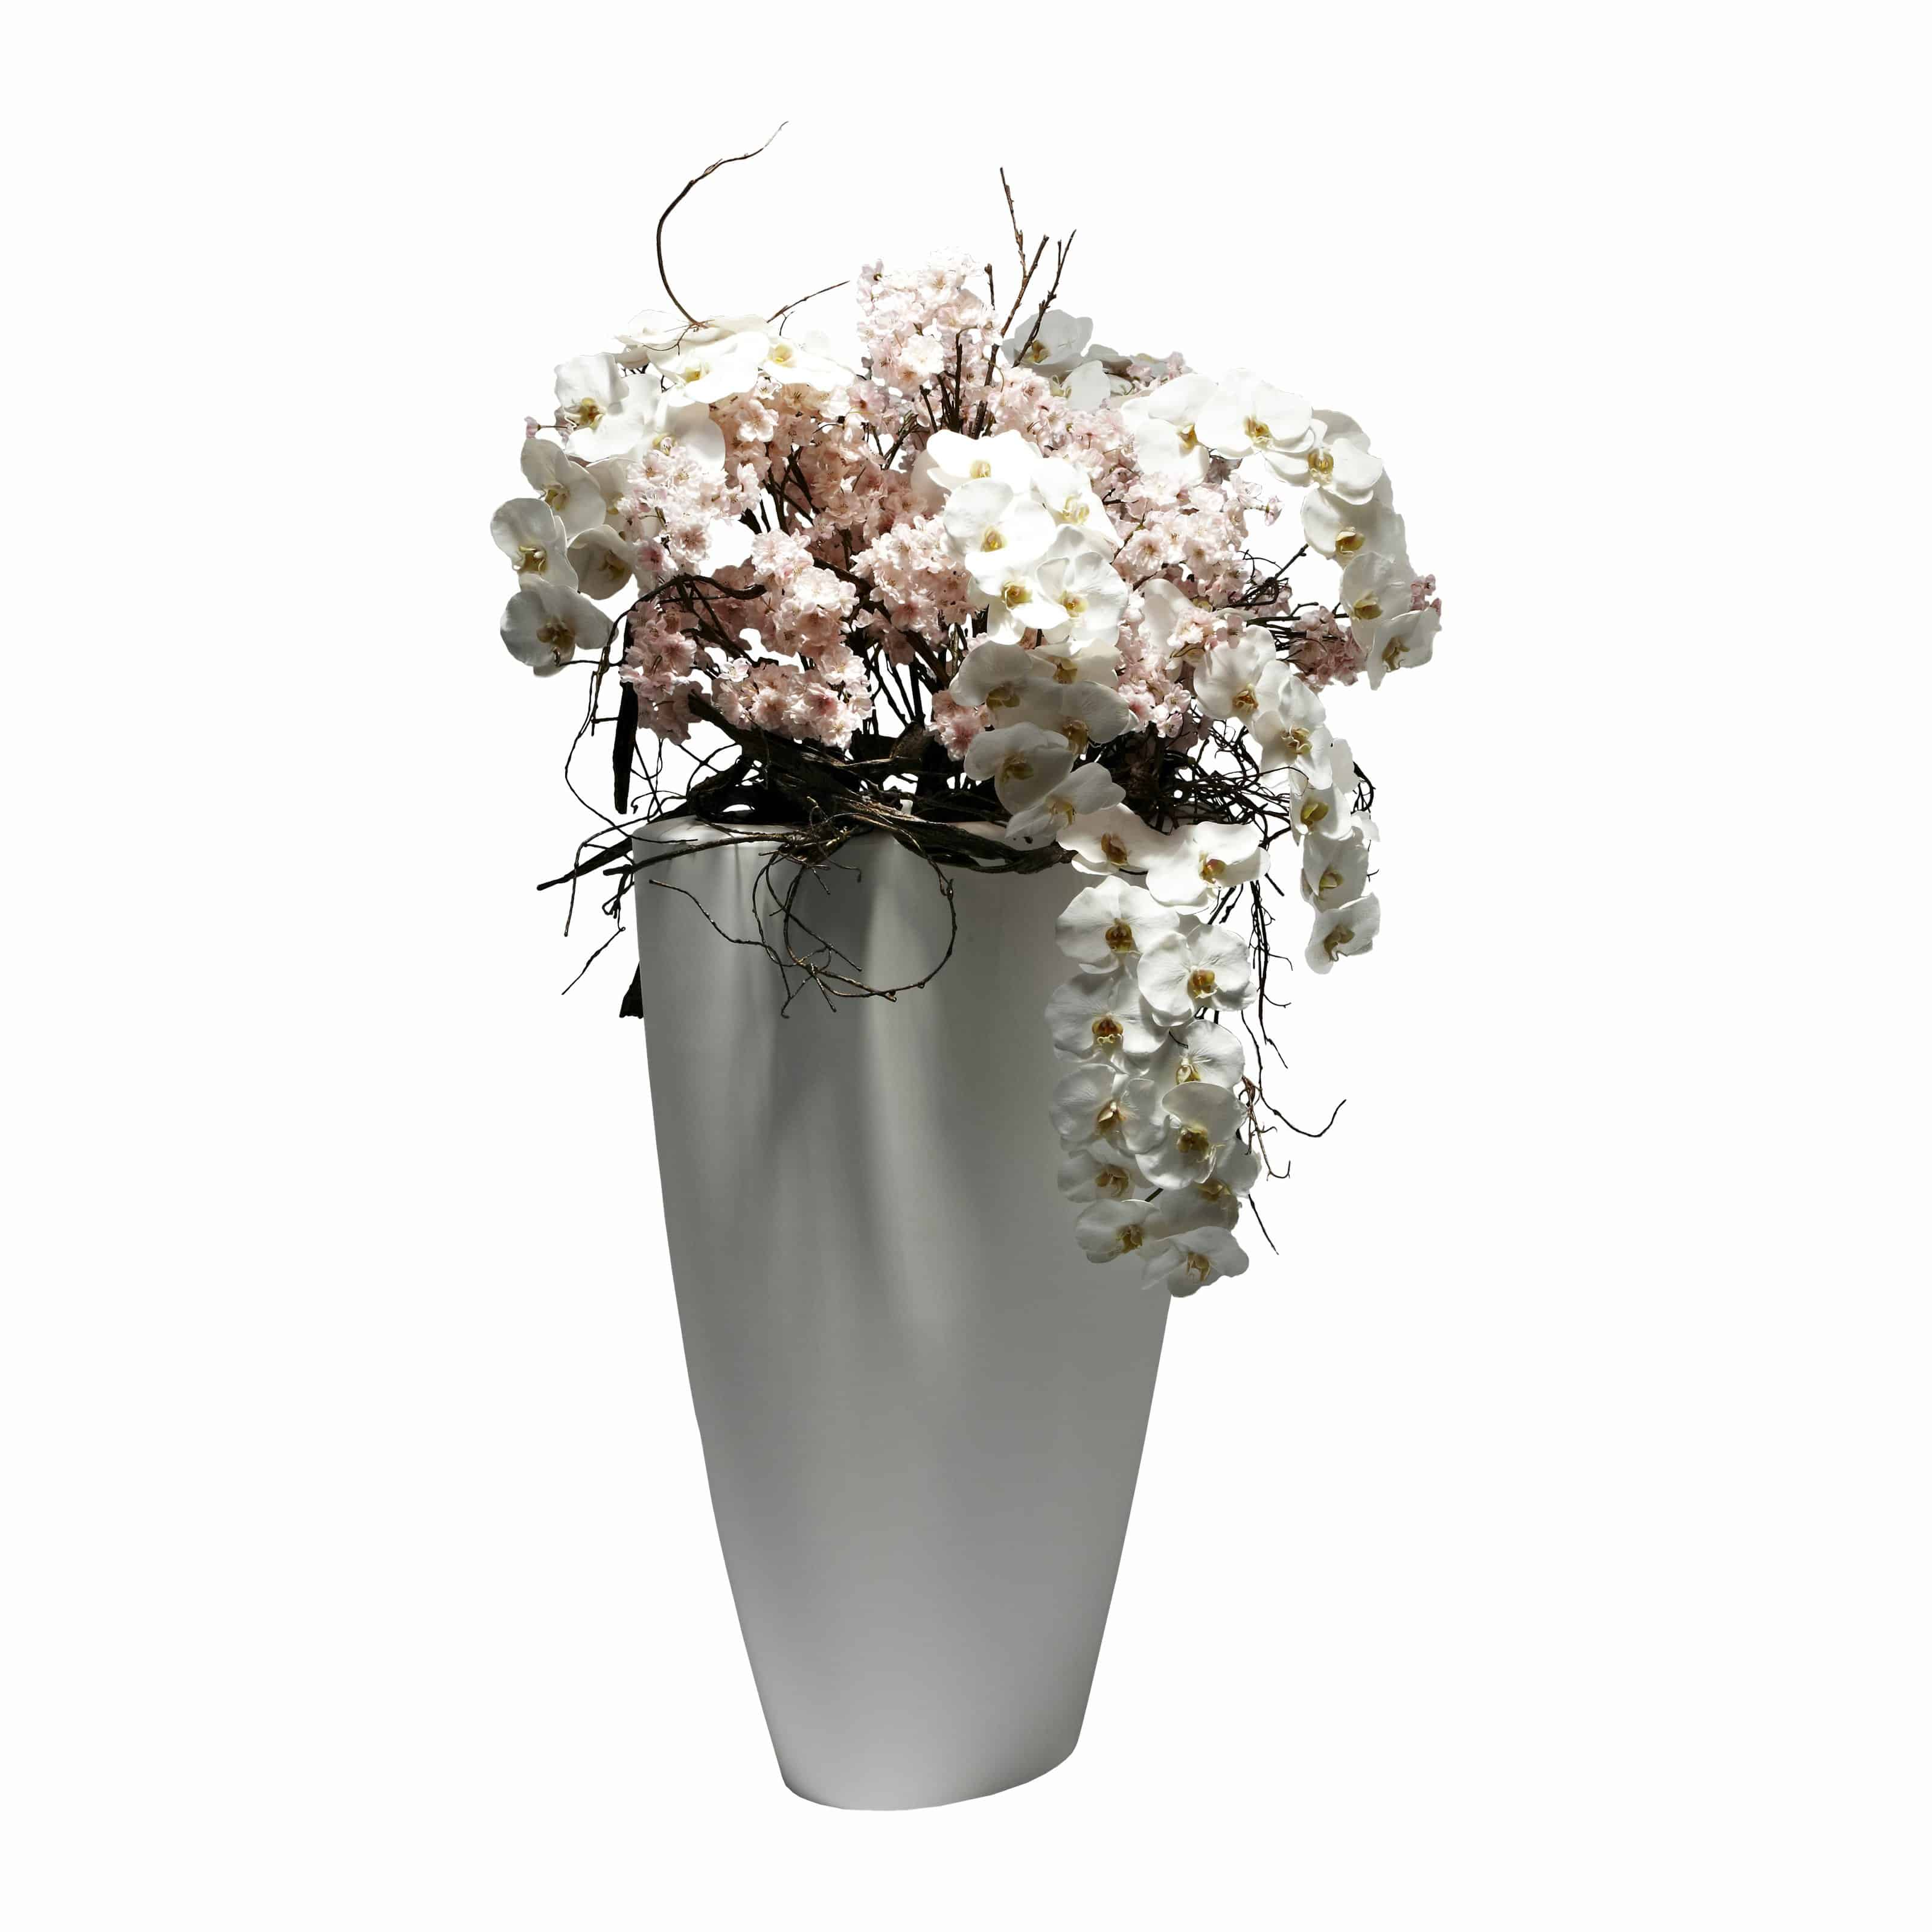 Silk Flower Arrangements Fake Flower Bouquets Shop Online Lifelike Flowers